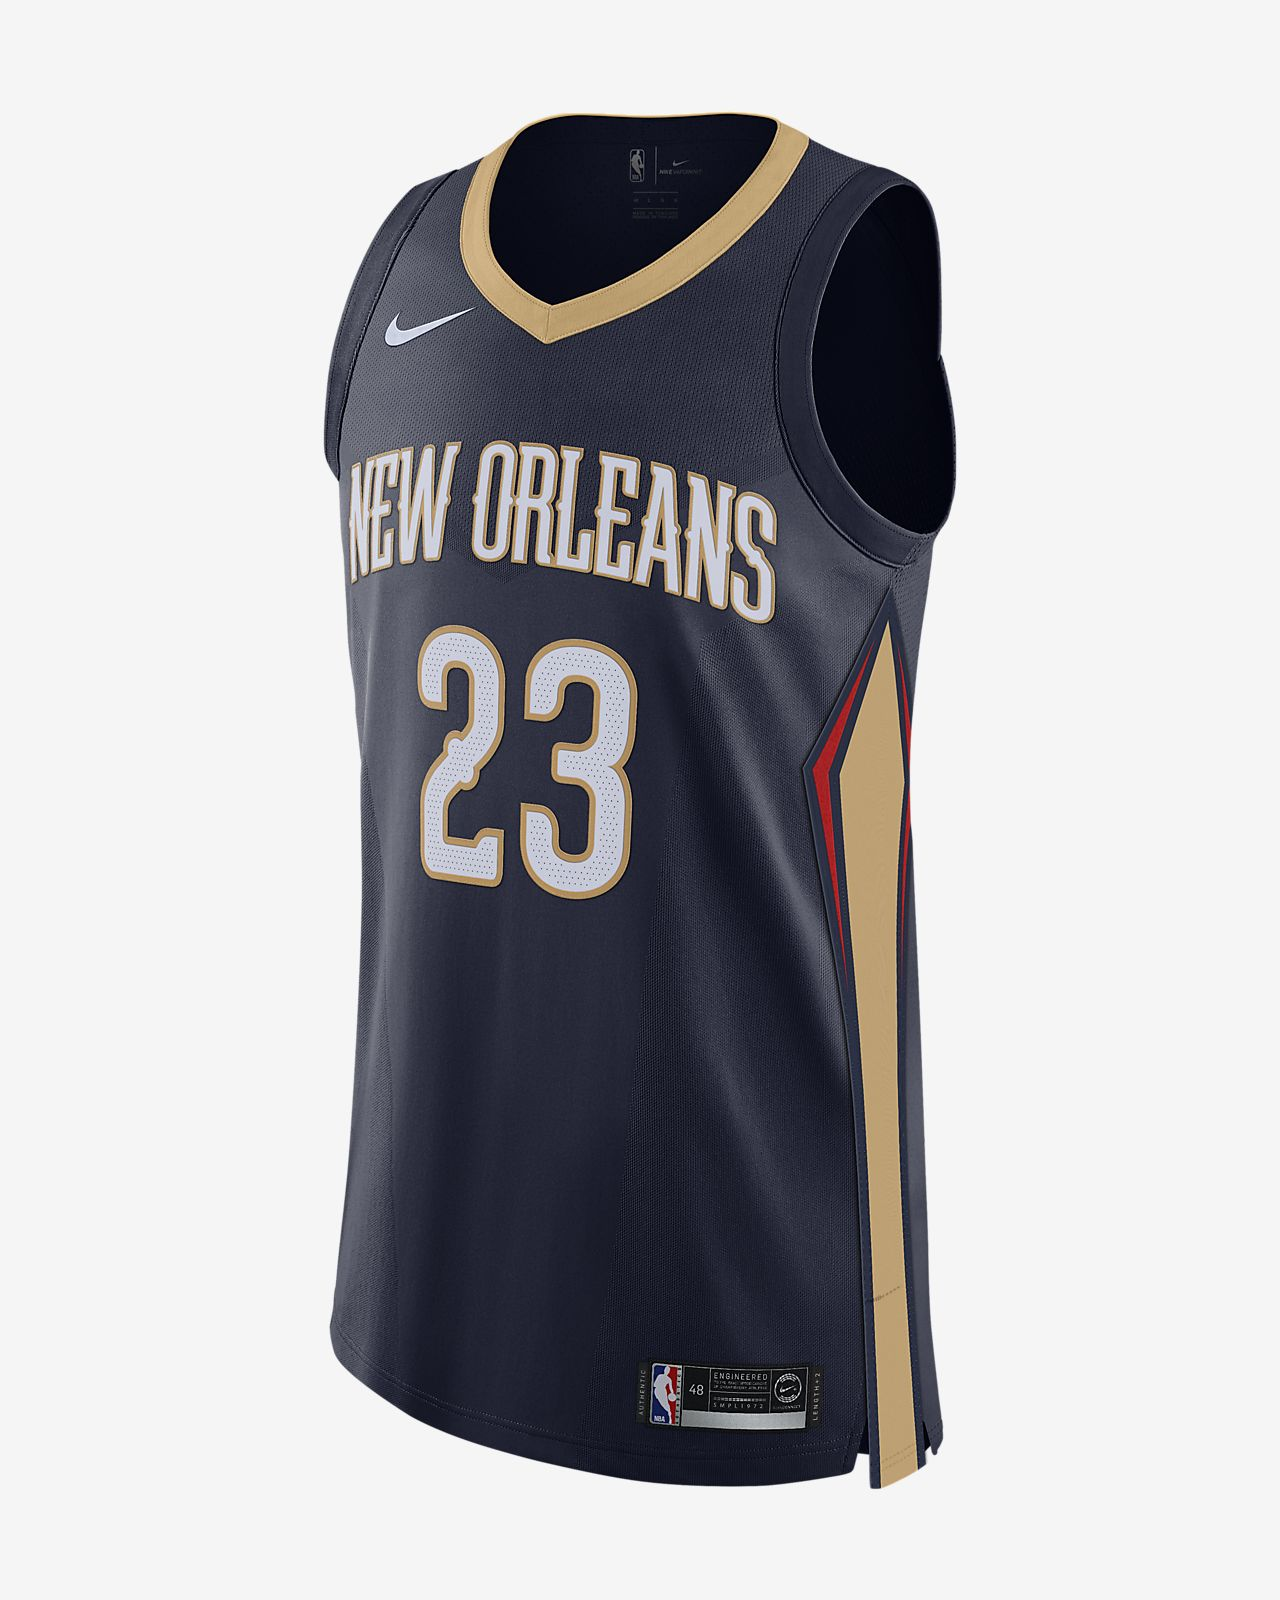 d61fd4a1aca ... Anthony Davis Icon Edition Authentic (New Orleans Pelicans) Men's Nike  NBA Connected Jersey